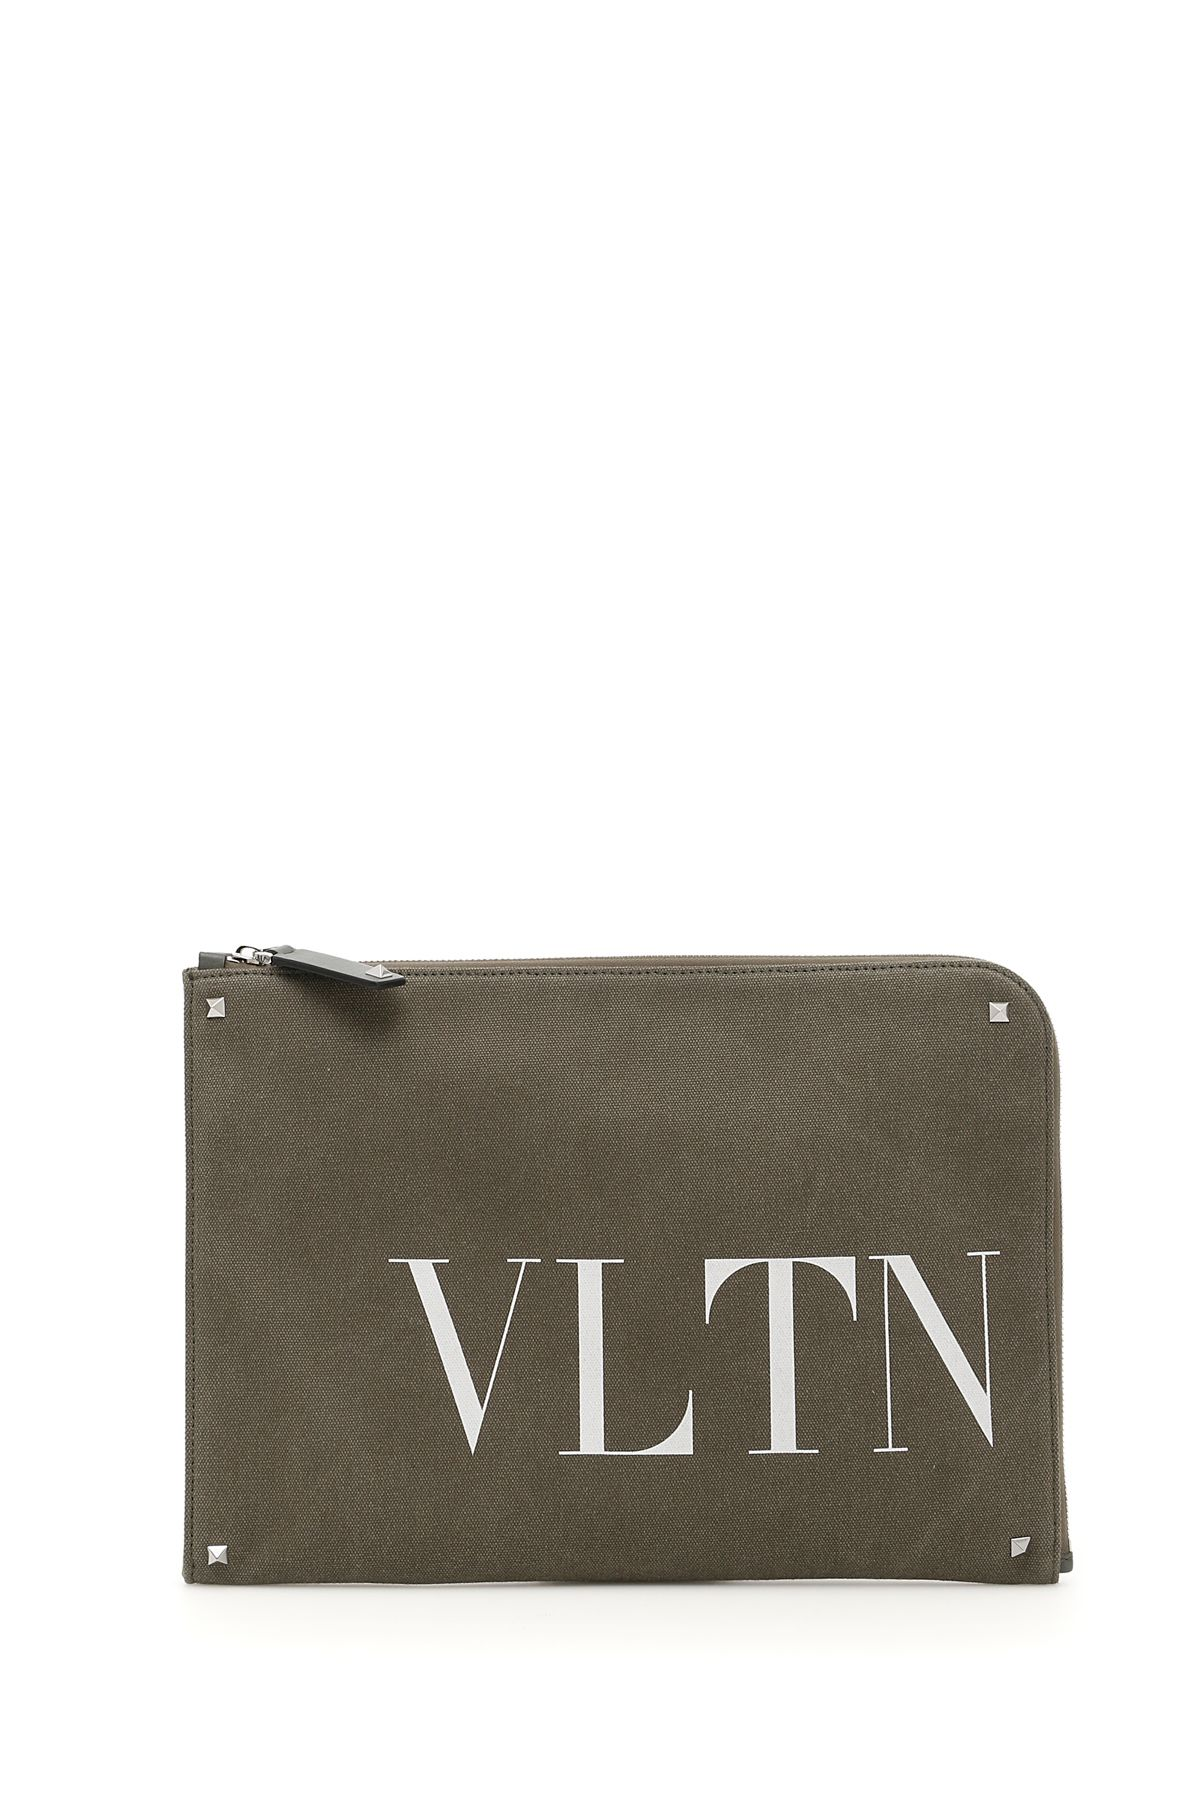 Valentino Cases Valentino Logo Document Case